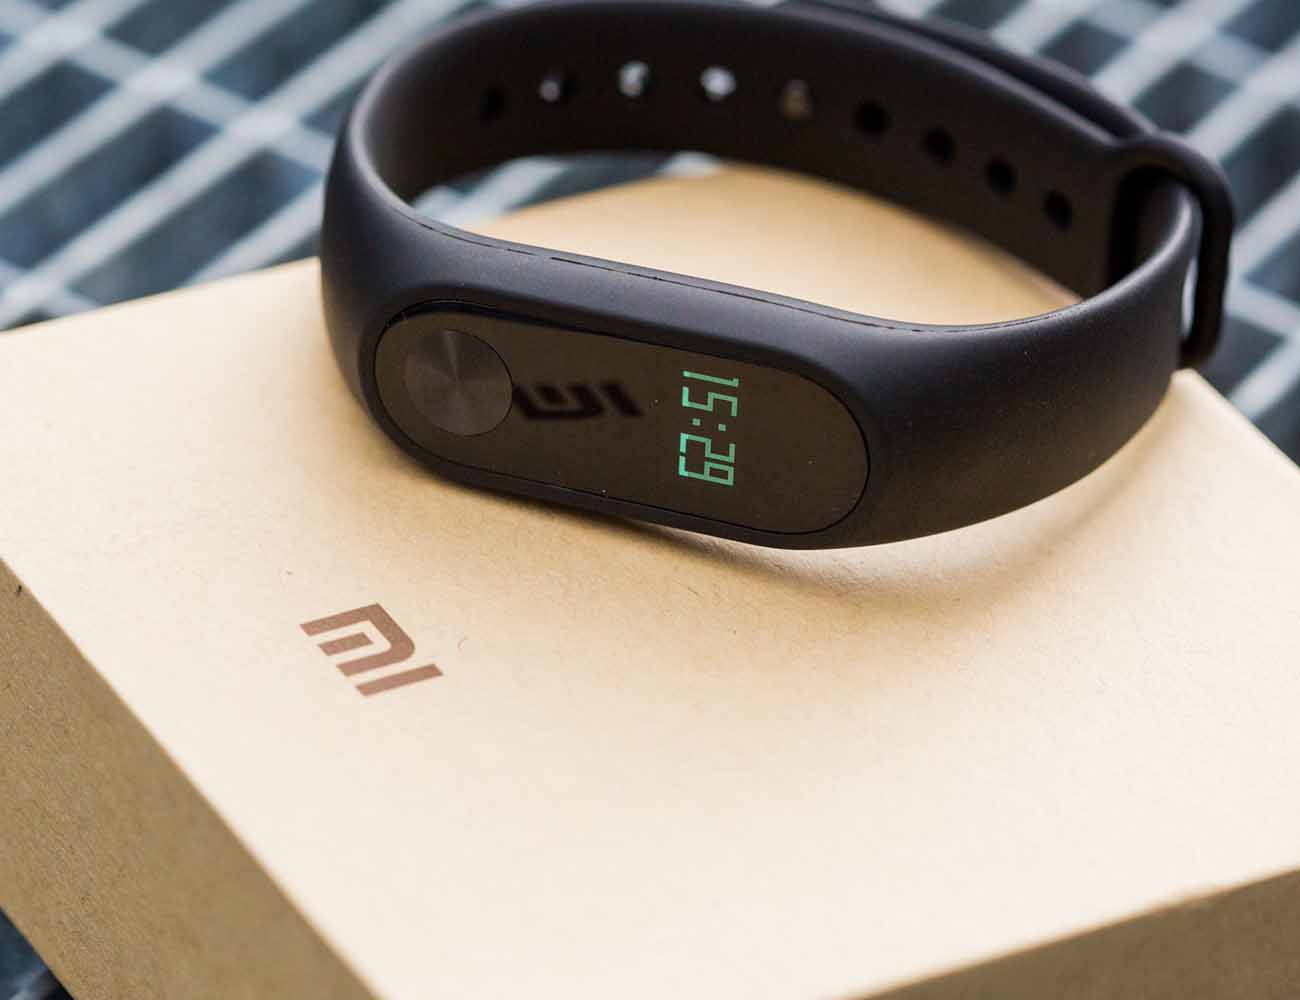 xiaomi mi band 2 gadget flow. Black Bedroom Furniture Sets. Home Design Ideas